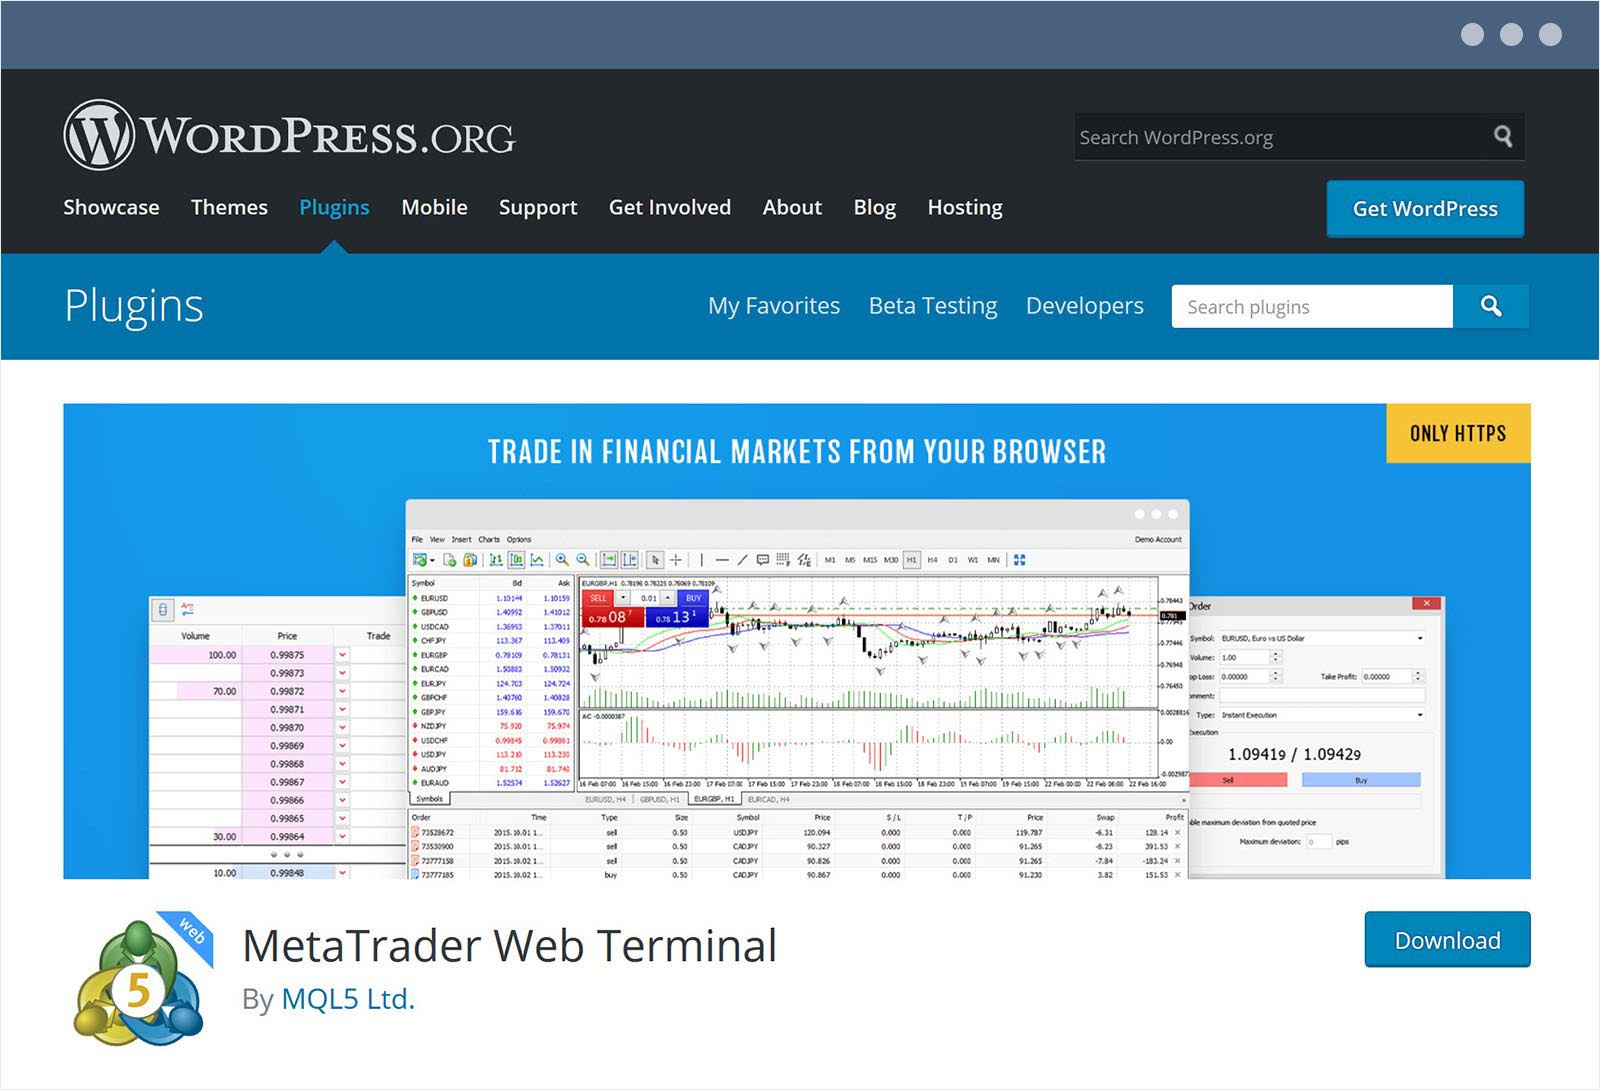 MetaTrader web terminal plugin for WordPress